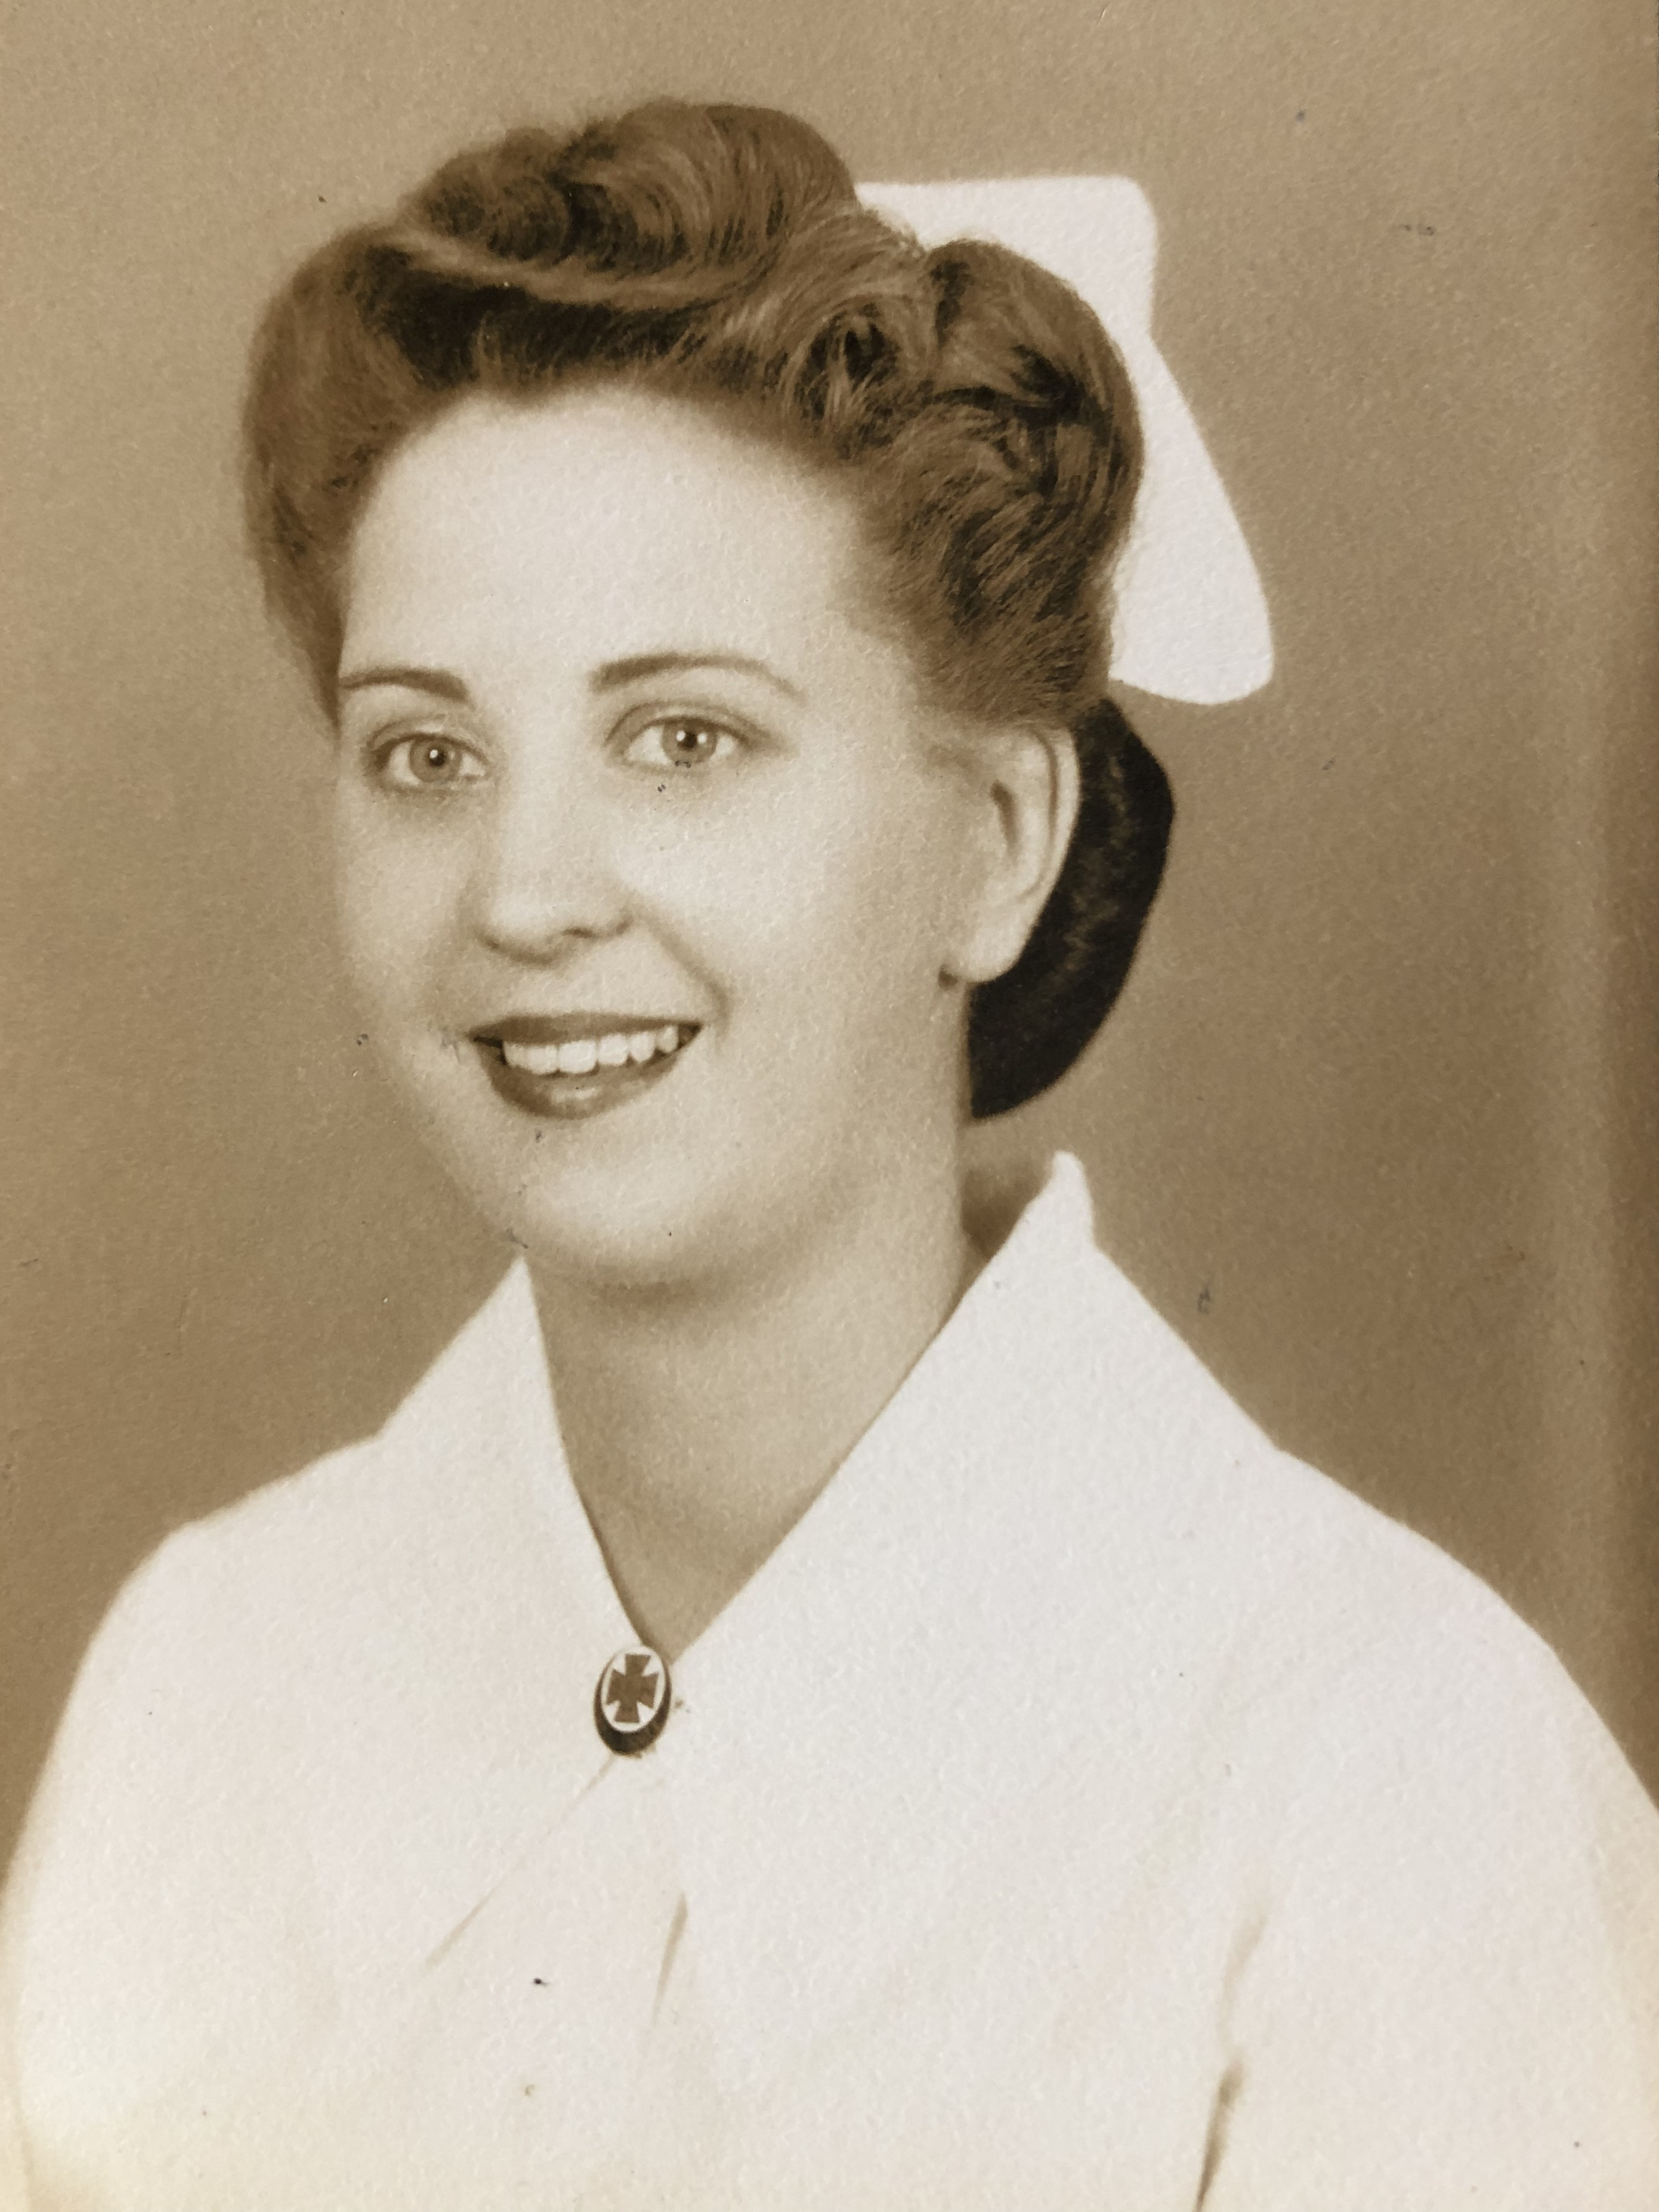 Beverly in hospital whites